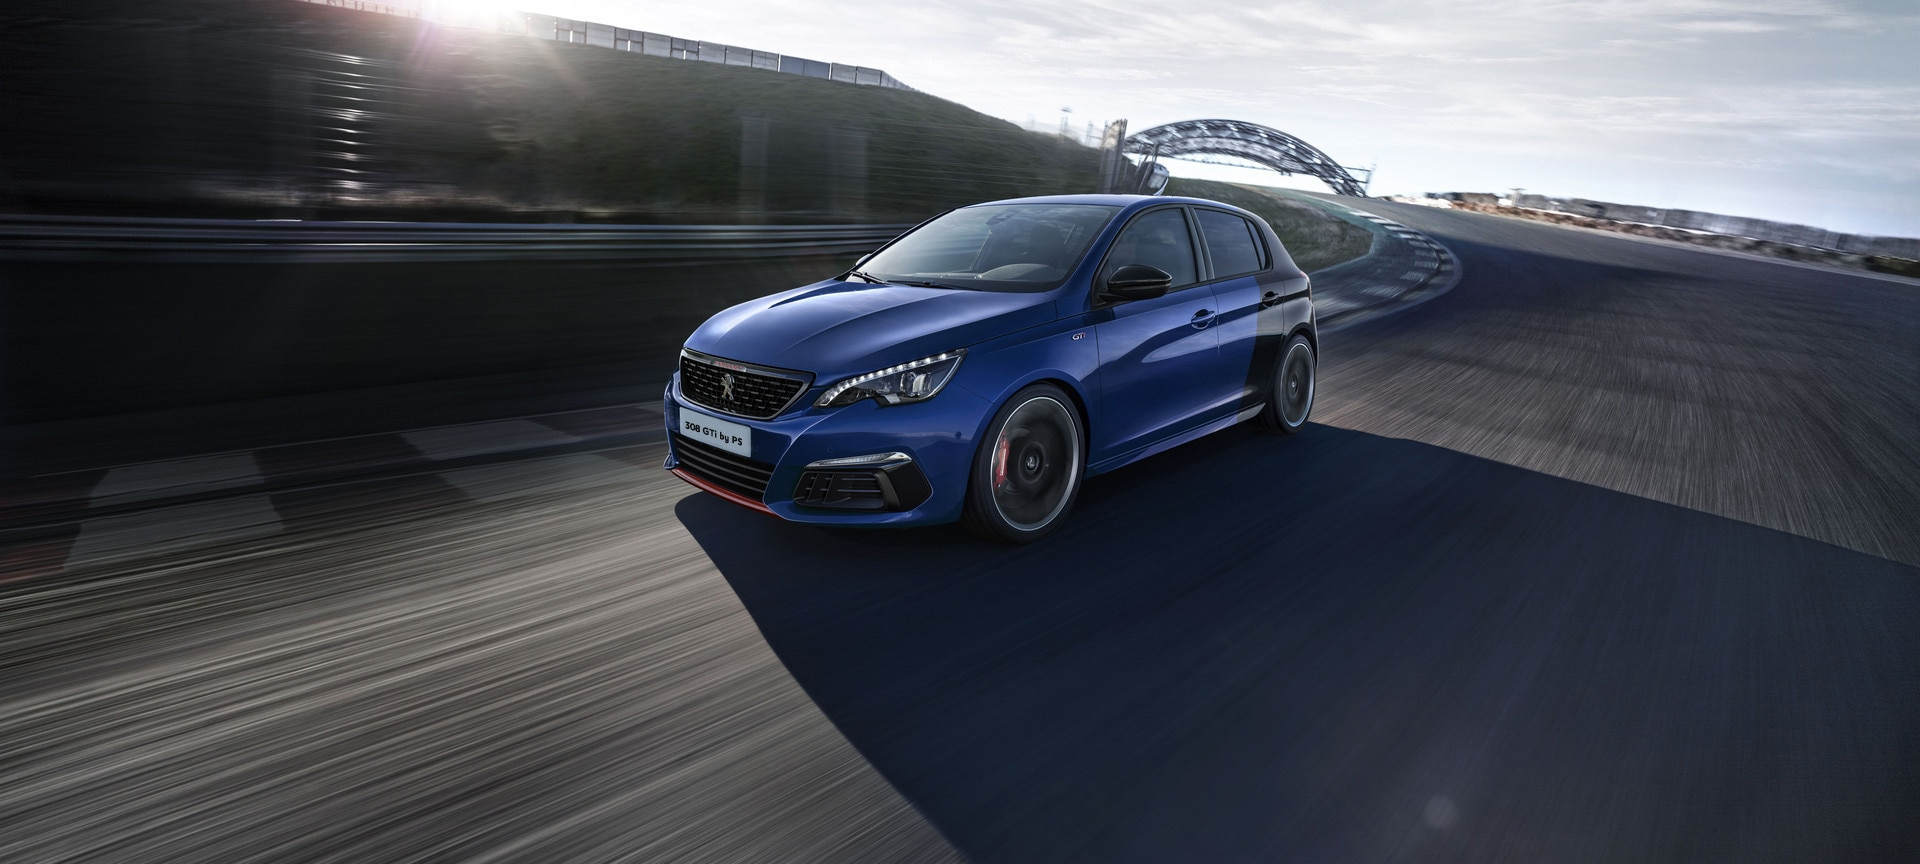 new peugeot 308 gti by peugeot sport discover the compact sports car by peugeot. Black Bedroom Furniture Sets. Home Design Ideas